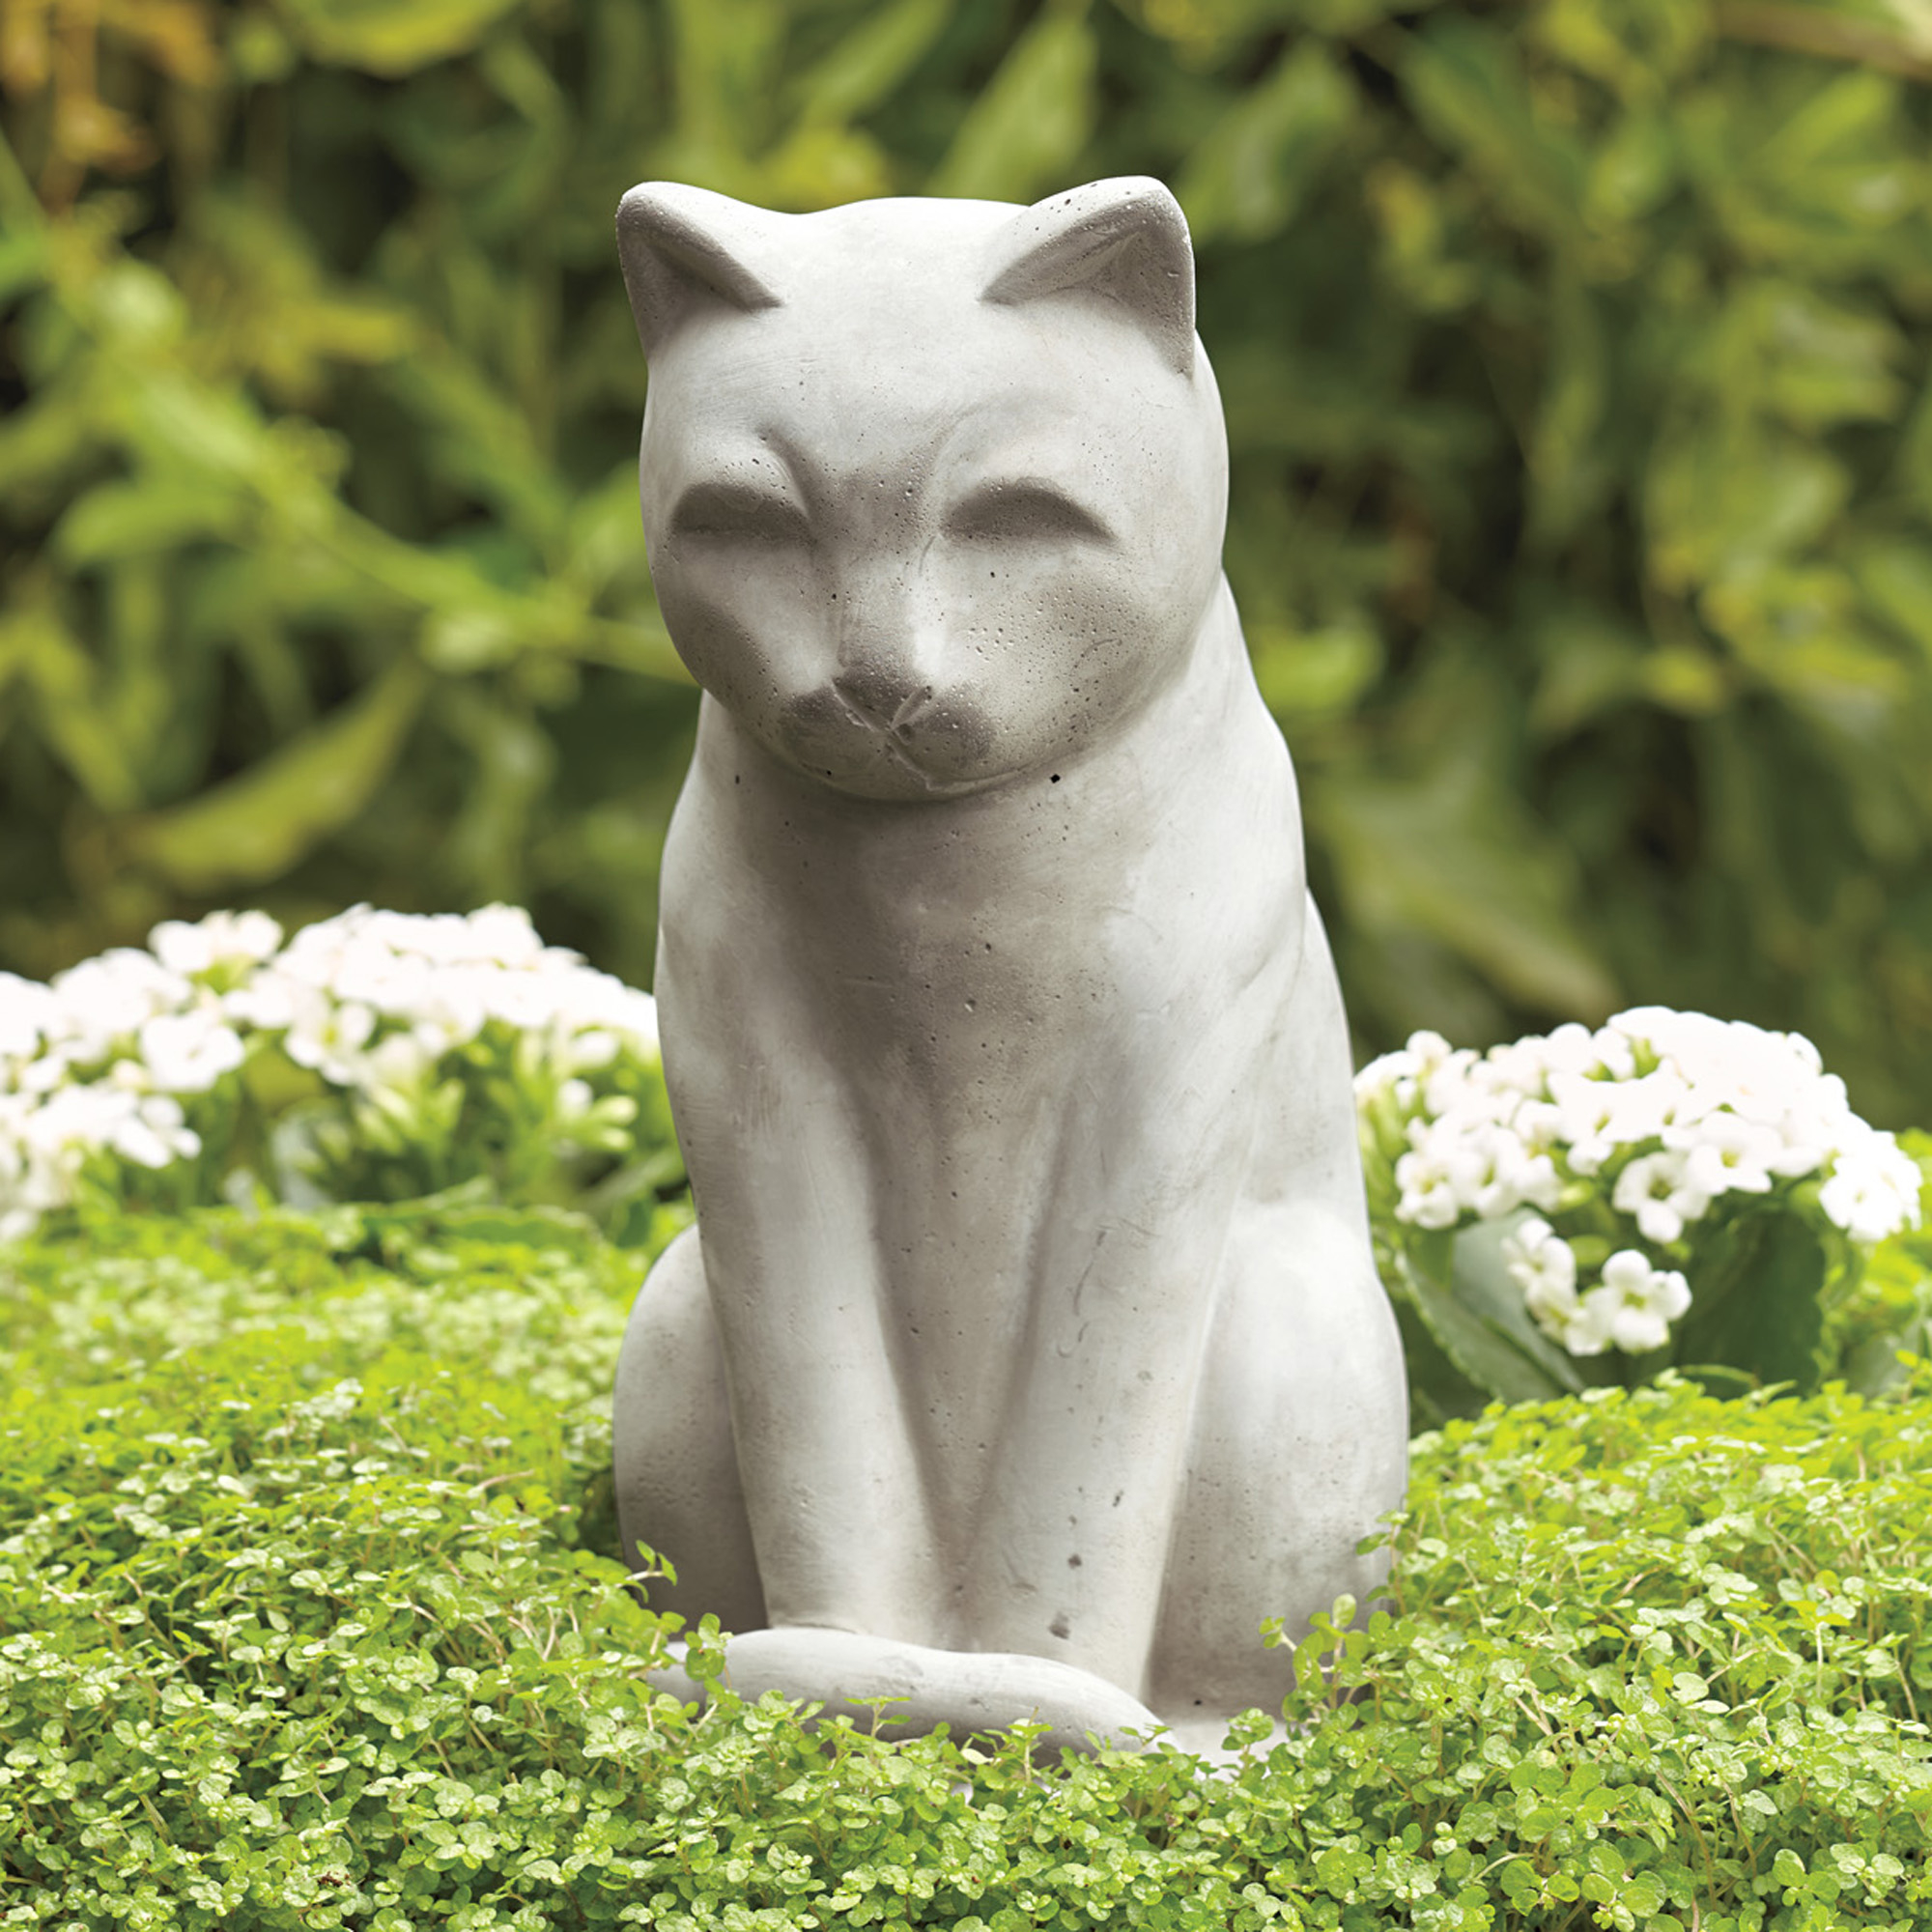 pinterest products to the good pin lazy daze see know did luck yawning design cat yawn statue kitty garden s a it you toscano